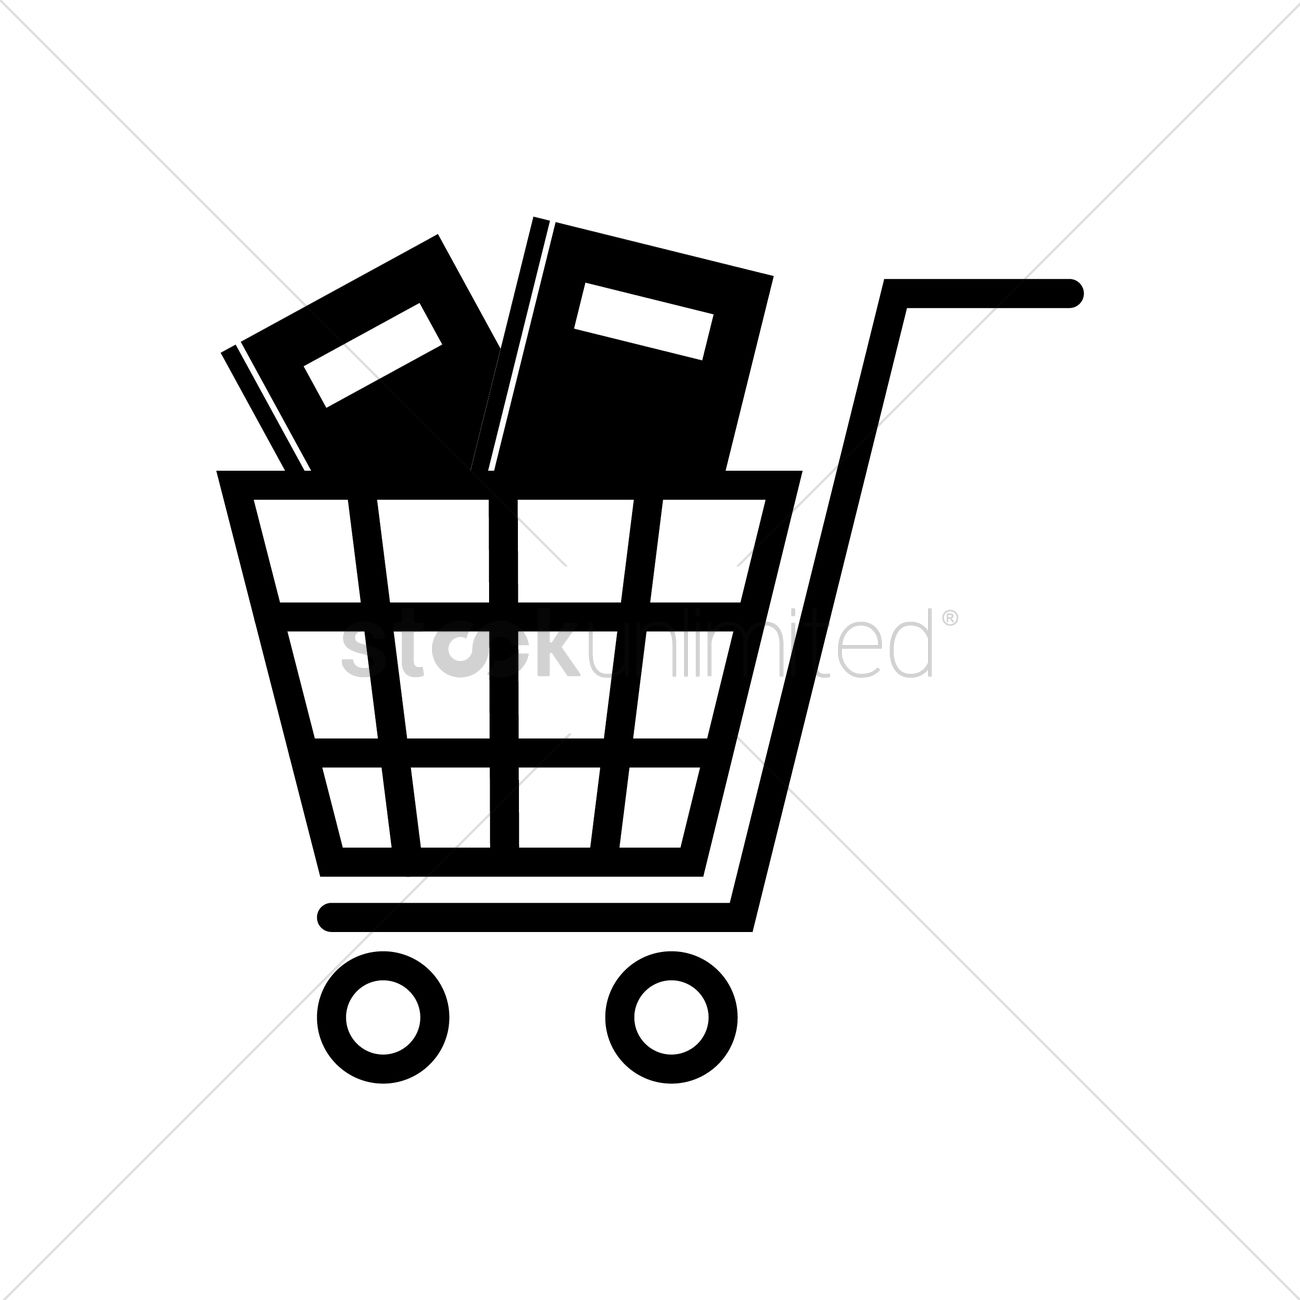 Books in cart icon Vector Image.